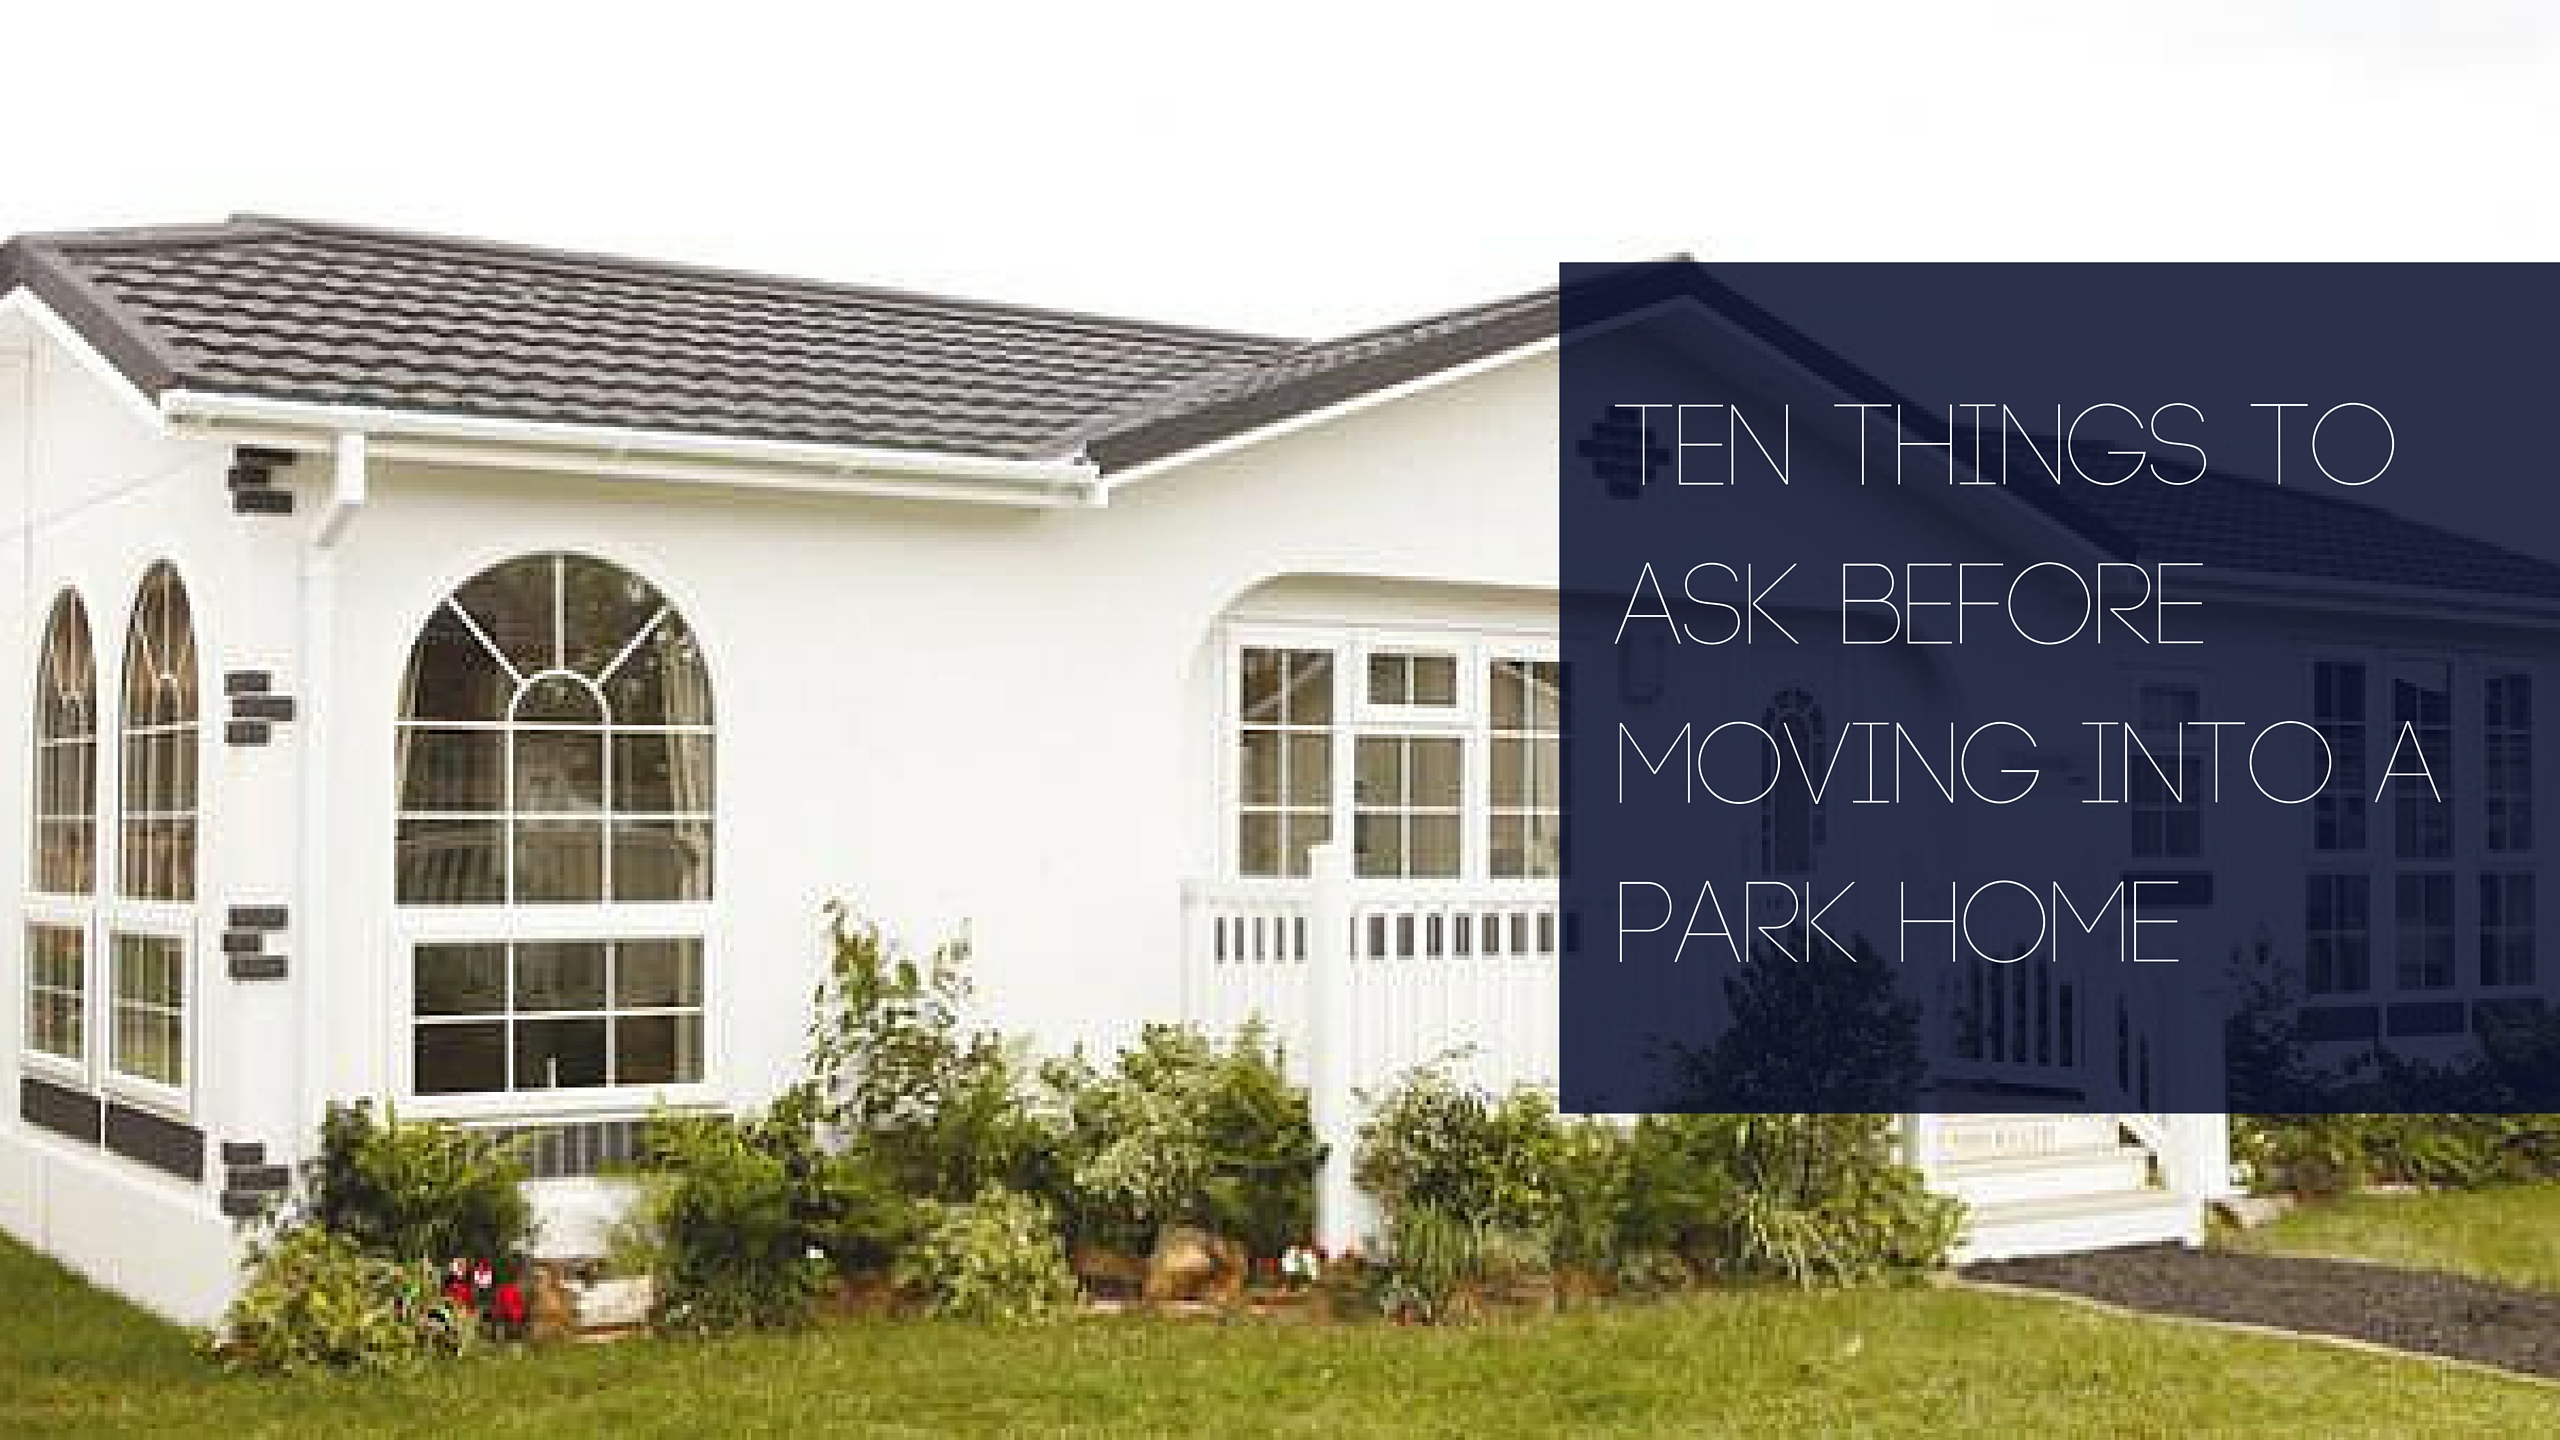 Ten things to ask before moving into a park home sell my for Things to do before moving into a new house